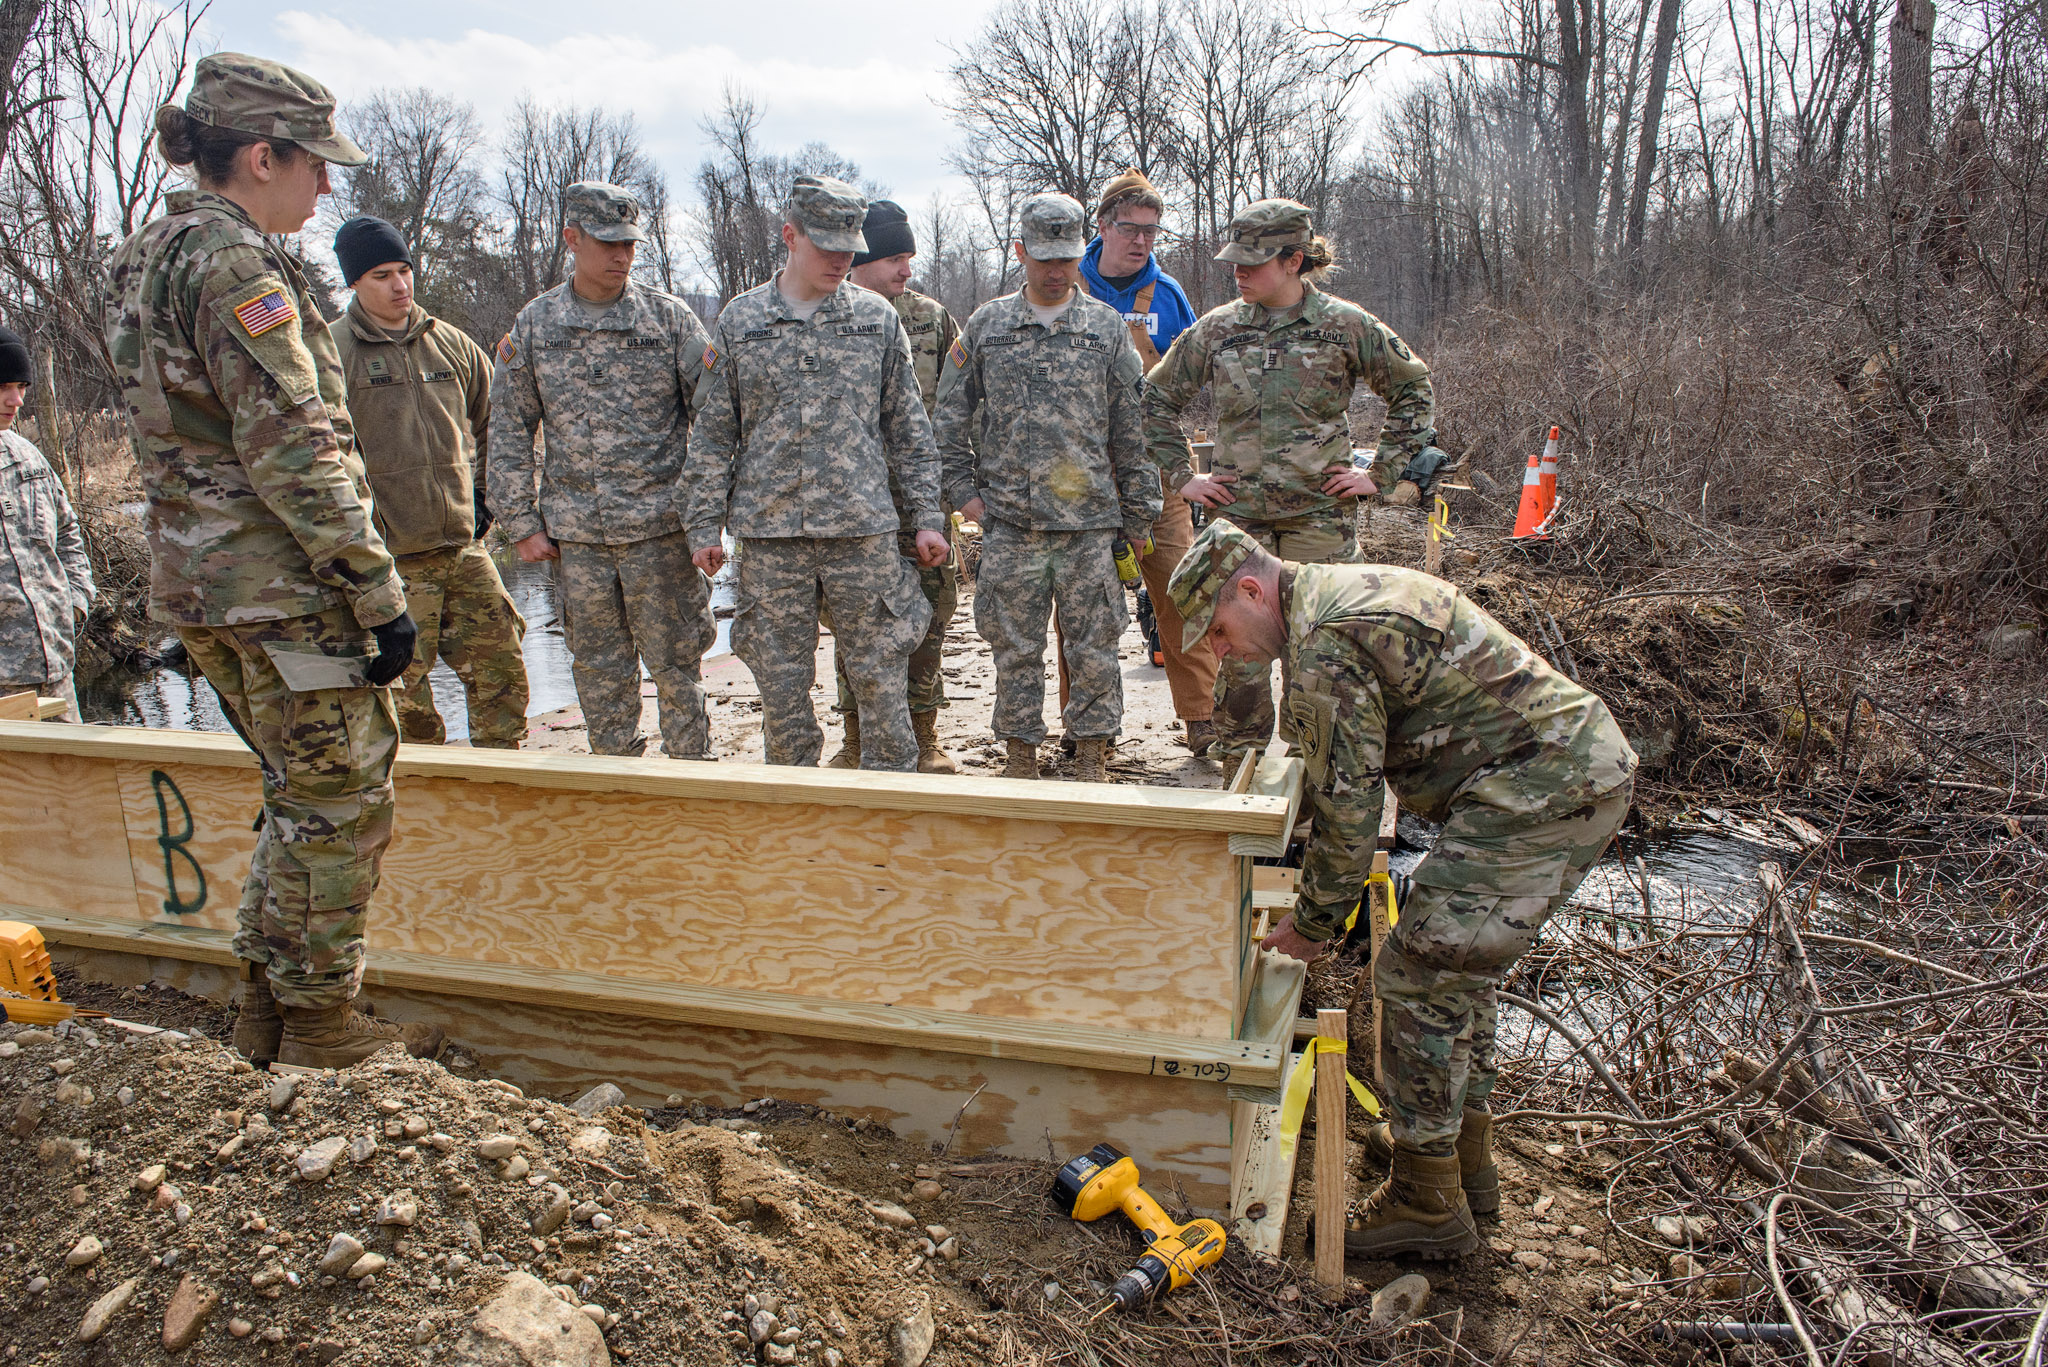 The Open Space Institute  has partnered with cadets from the United States Military Academy (USMA) at West Point and the New York State Office of Parks, Recreation, and Historic Preservation (OPRHP) to replace an unreliable steel plate bridge on the School Mountain Road trail in the Hubbard Lodge area of Clarence Fahnestock Memorial State Park.